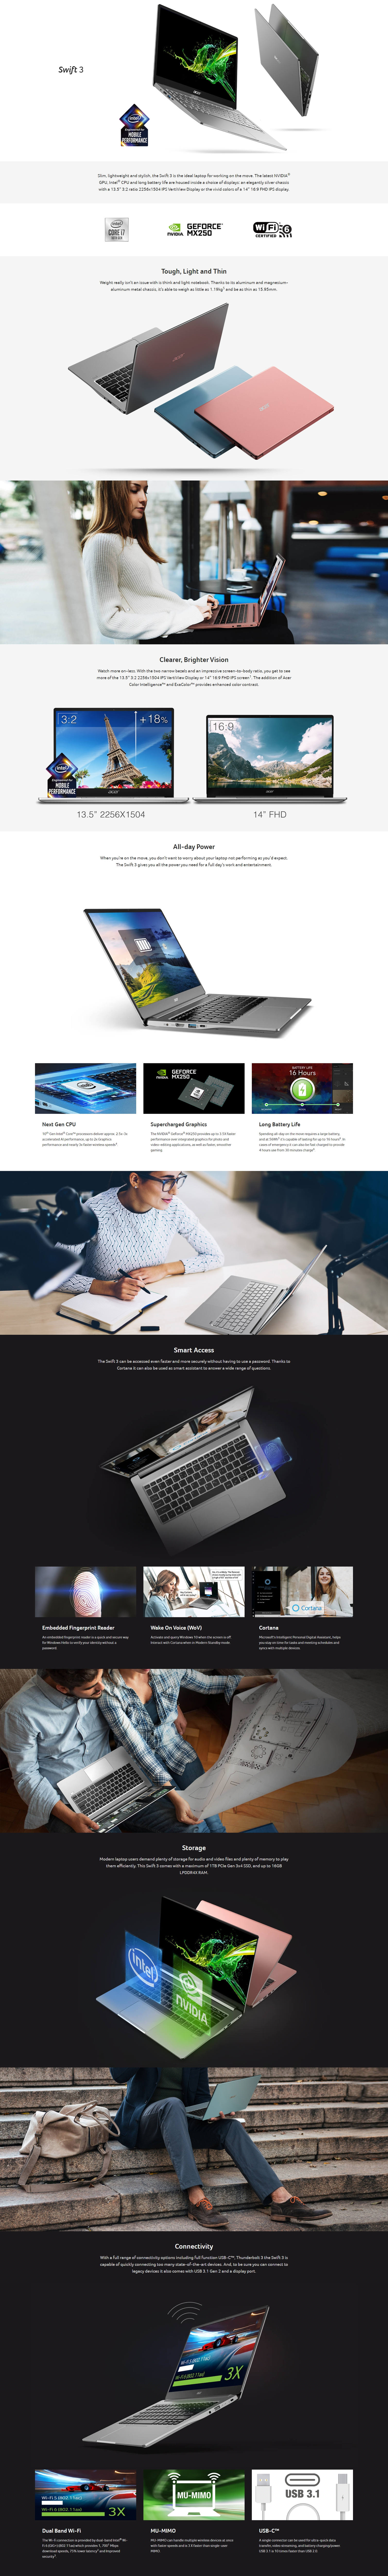 """A large marketing image providing additional information about the product Acer Swift 3 14"""" i5 Windows 10 Home Notebook - Additional alt info not provided"""